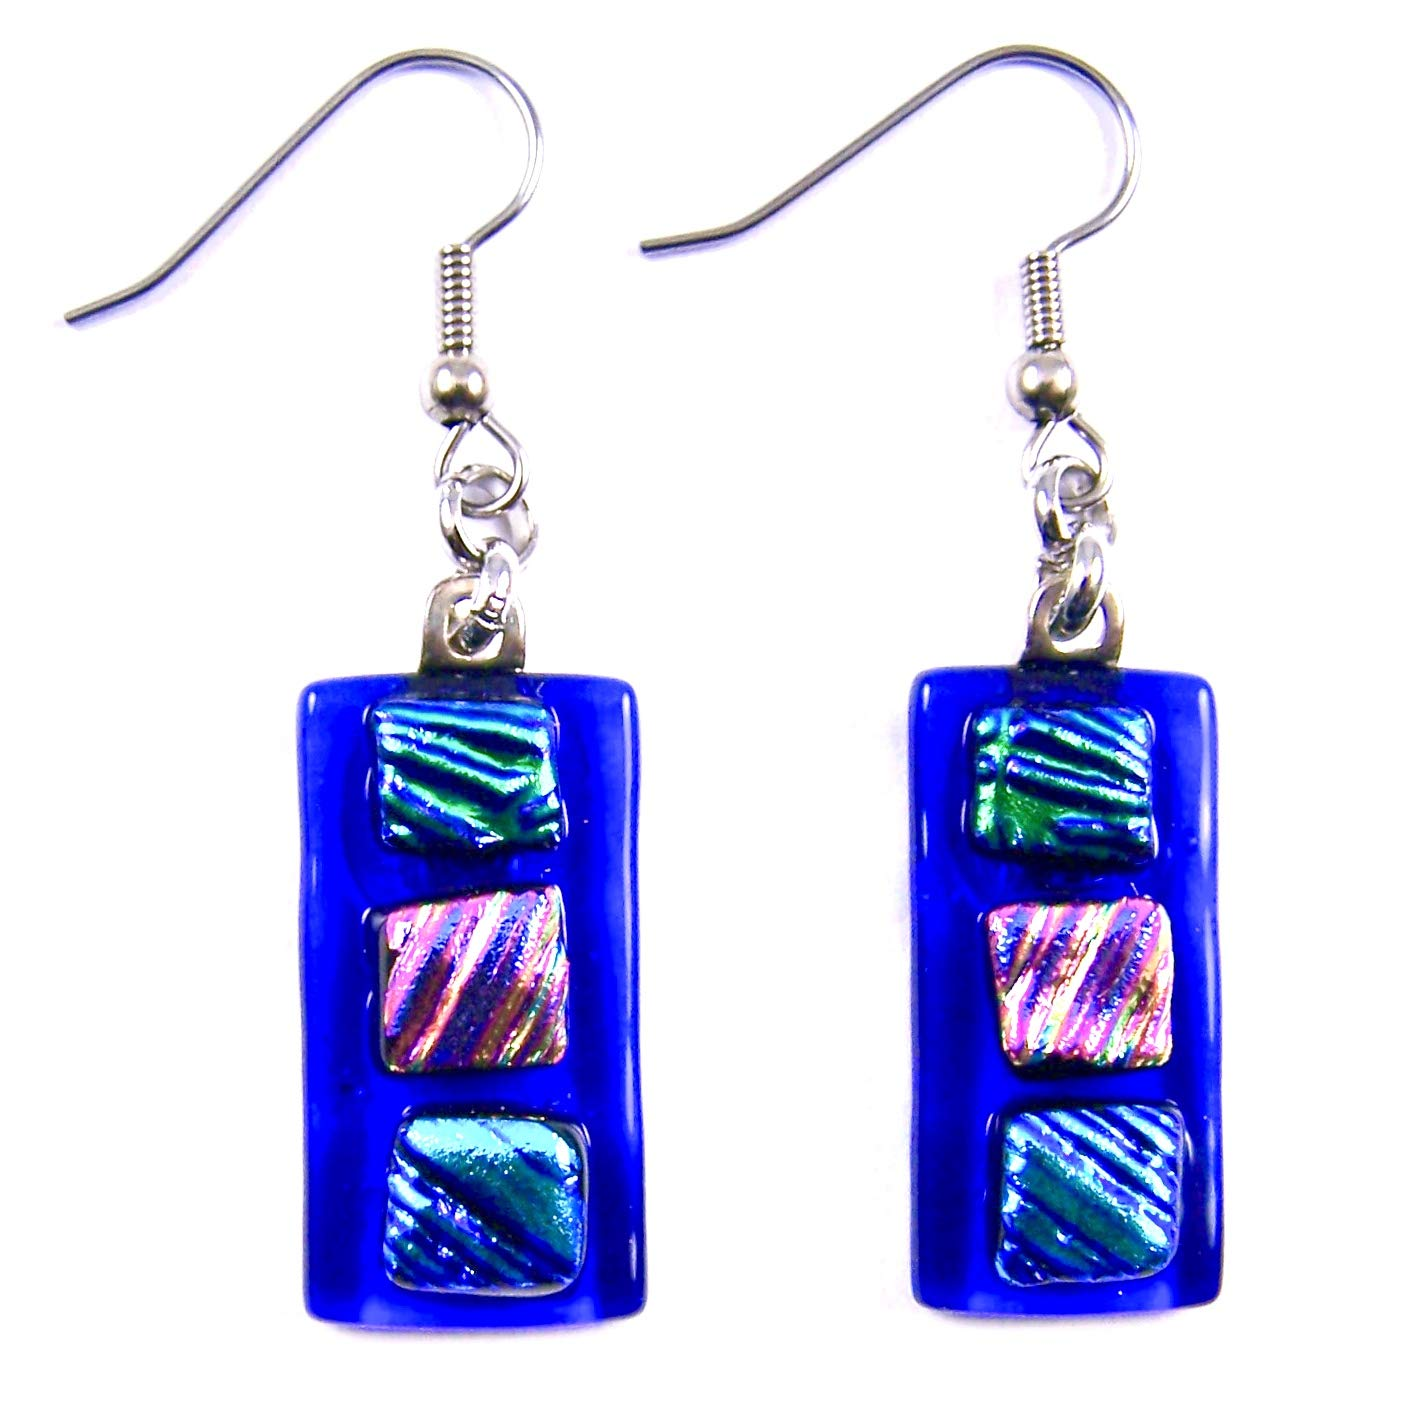 Details about  /Handmade Blue Fused Dichroic Art Glass Jewelry Dangle Earrings Crinkle Pattern s